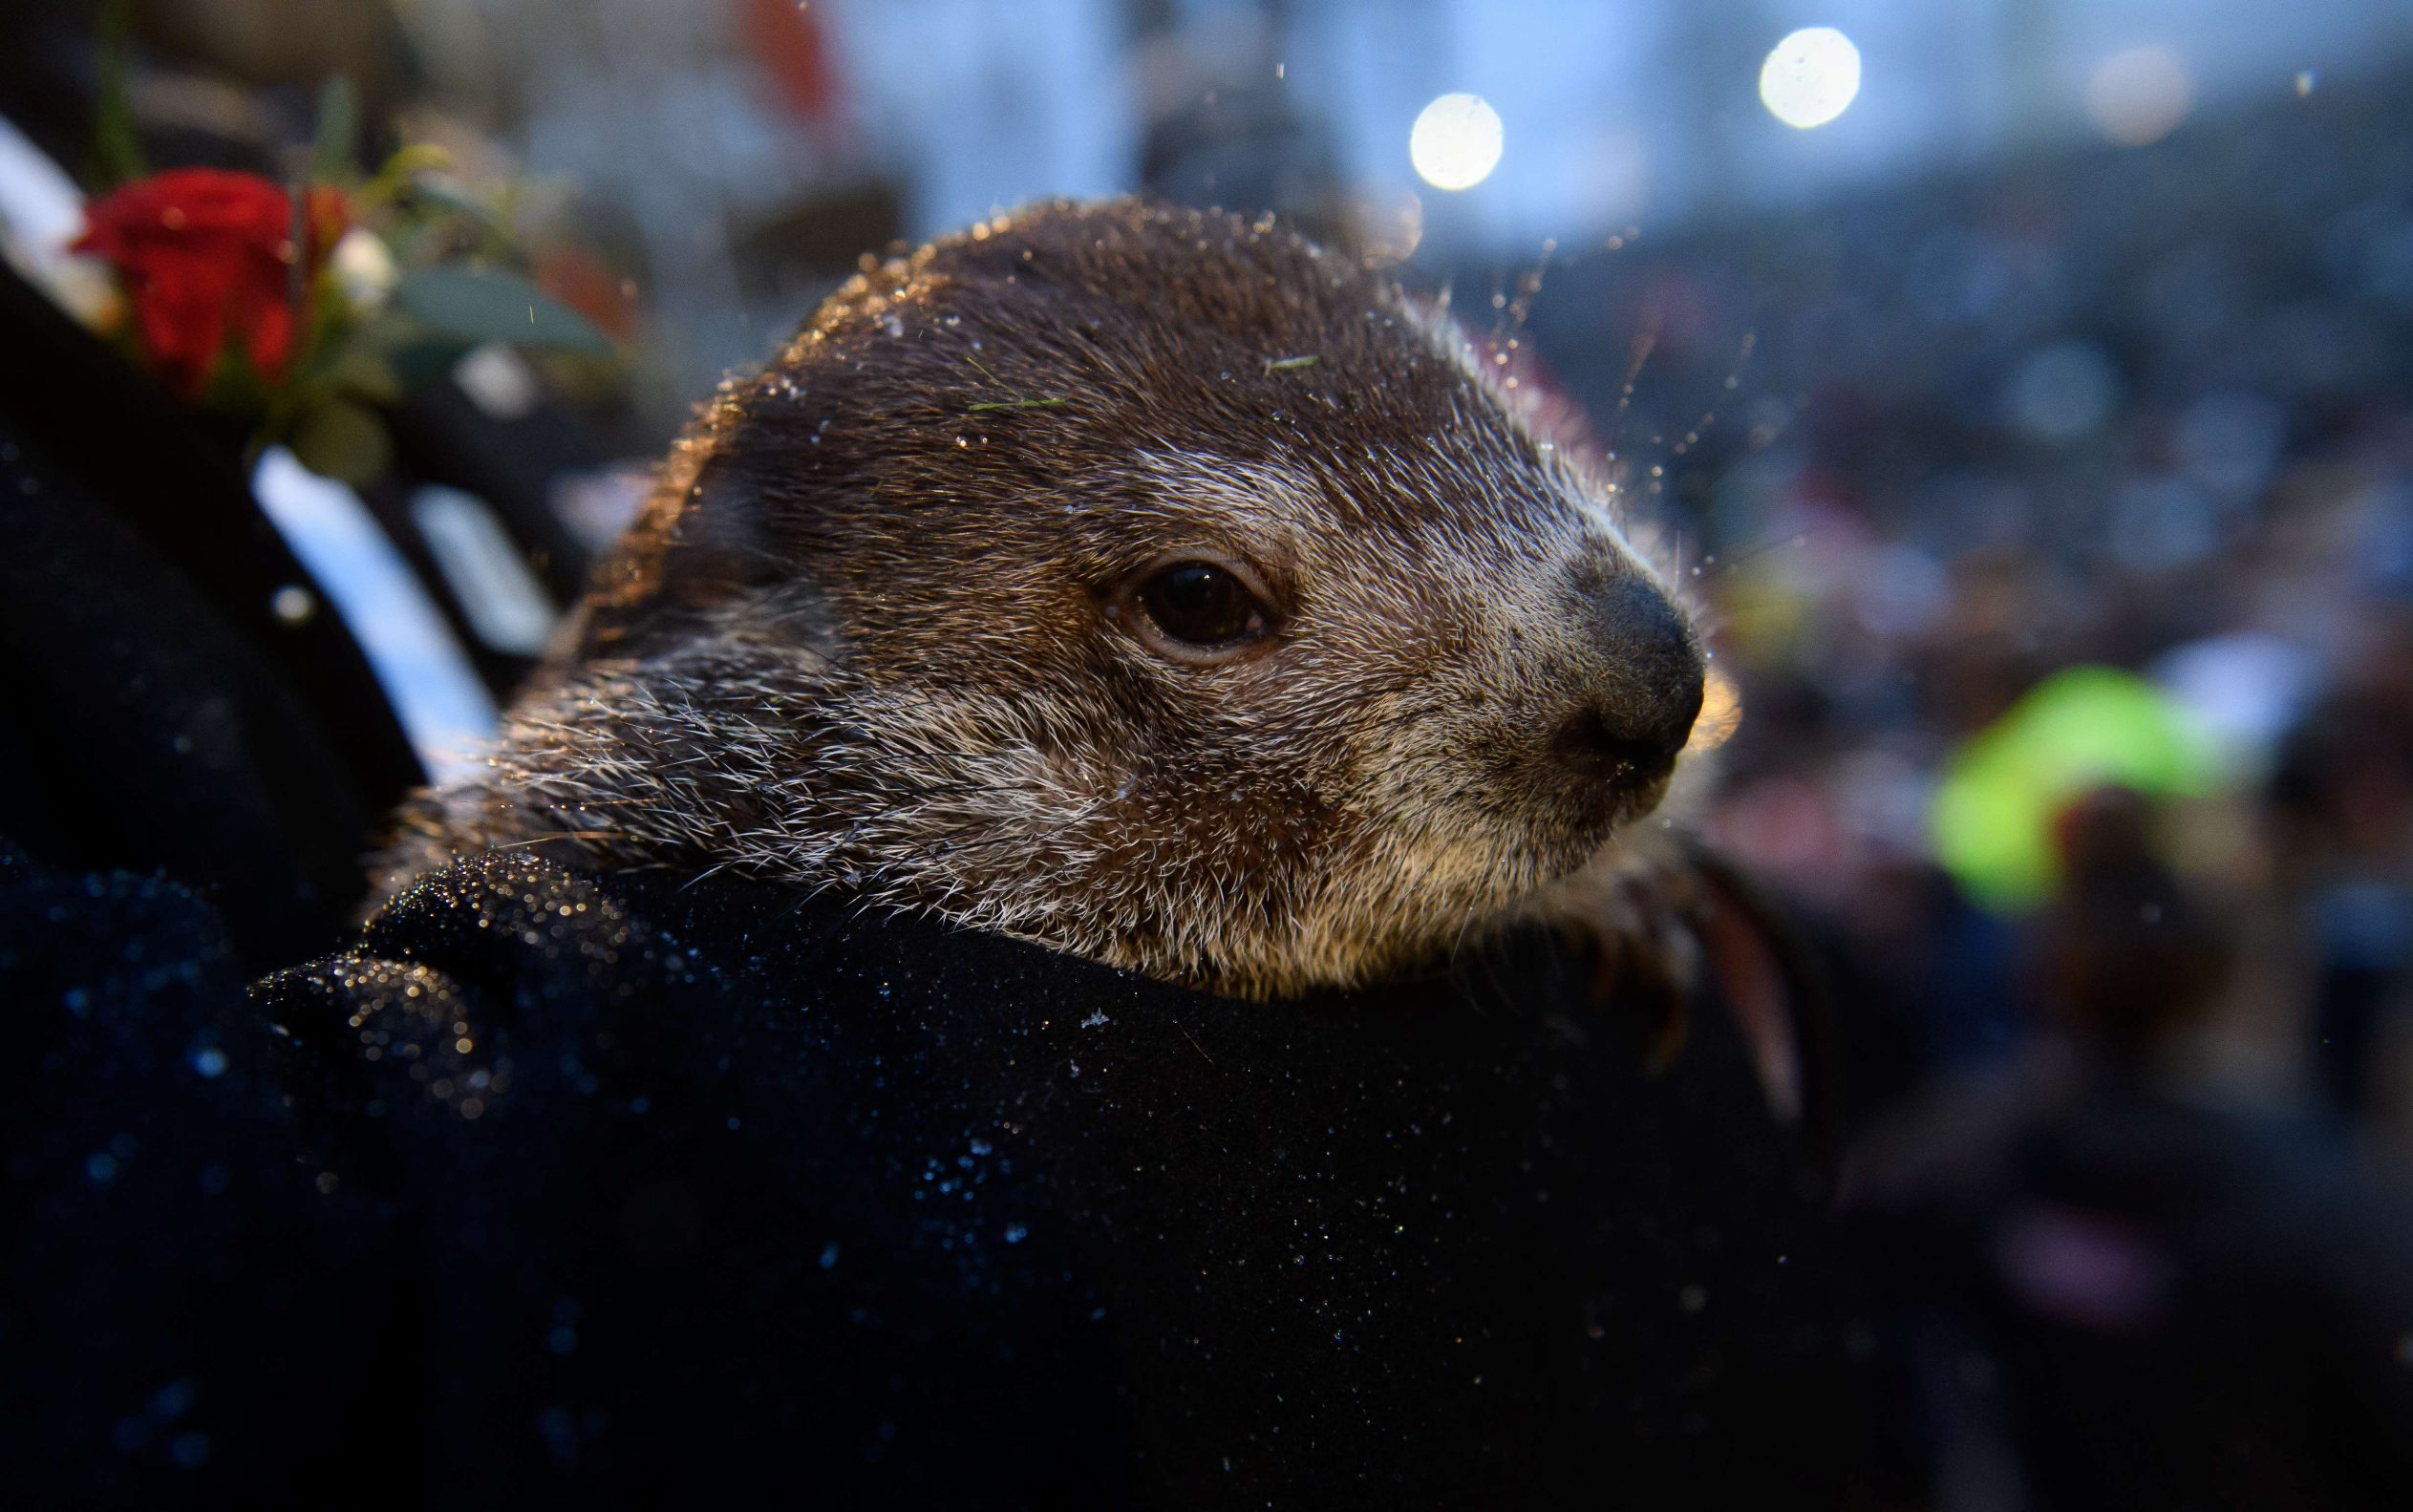 PUNXSUTAWNEY, PA - FEBRUARY 02: Groundhog handler John Griffiths holds Punxsutawney Phil, who did not see his shadow, predicting an early or late spring during the 134th annual Groundhog Day festivities on February 2, 2020 in Punxsutawney, Pennsylvania. Groundhog Day is a popular tradition in the United States and Canada. A crowd of upwards of 20,000 people spent a night of revelry awaiting the sunrise and the groundhog's exit from his winter den. If Punxsutawney Phil sees his shadow he regards it as an omen of six more weeks of bad weather and returns to his den. Early spring arrives if he does not see his shadow, causing Phil to remain above ground.   Jeff Swensen/Getty Images/AFP == FOR NEWSPAPERS, INTERNET, TELCOS & TELEVISION USE ONLY ==